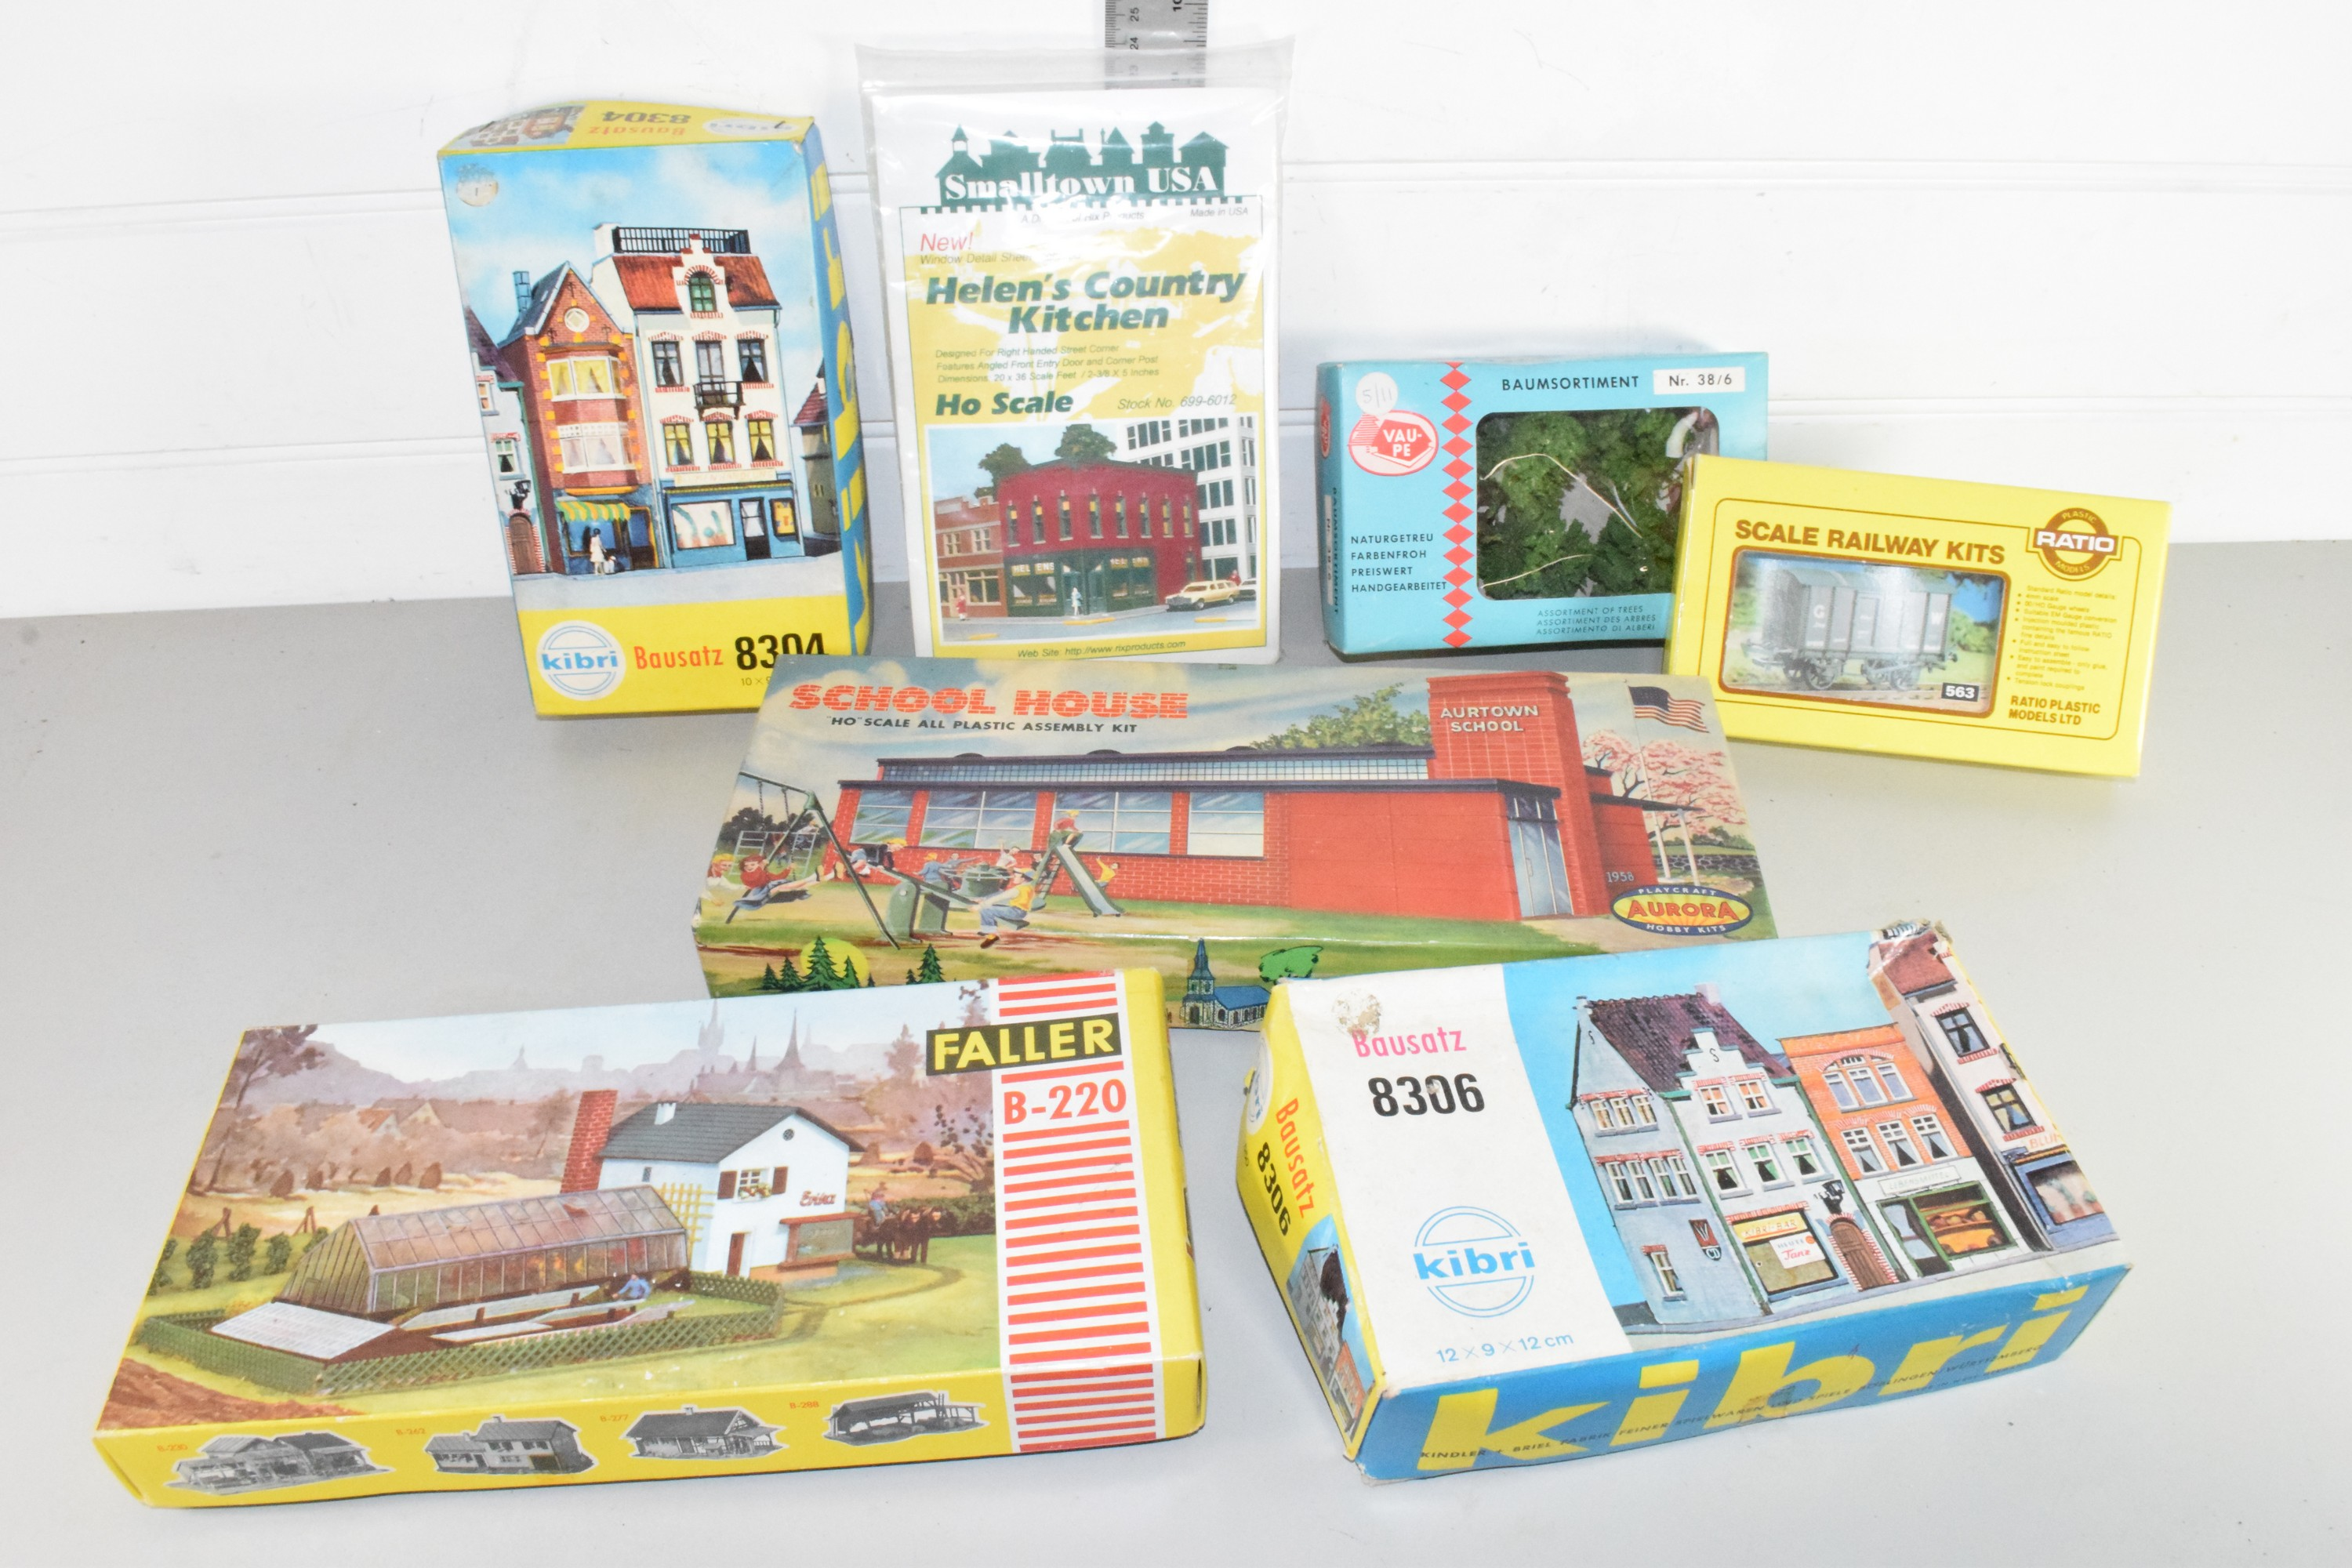 Small box containing model buildings, dioramas, some by Kibri